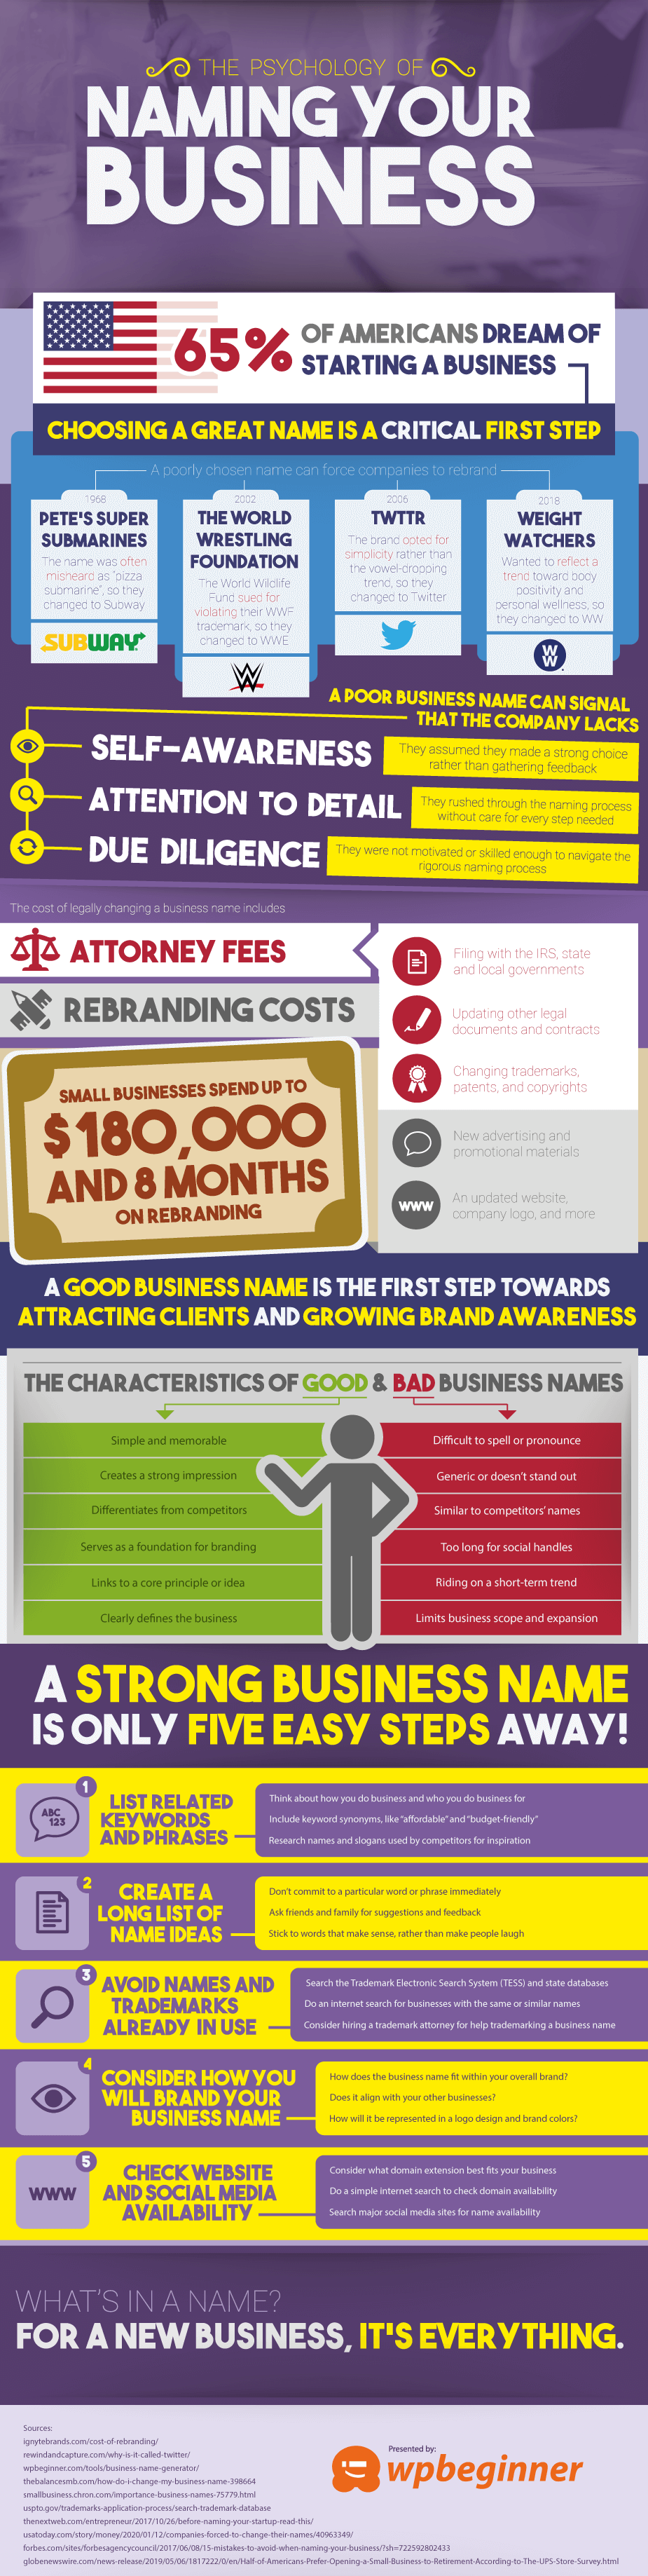 Psychology Of Naming Your Business - Infographic - Business Name Generator